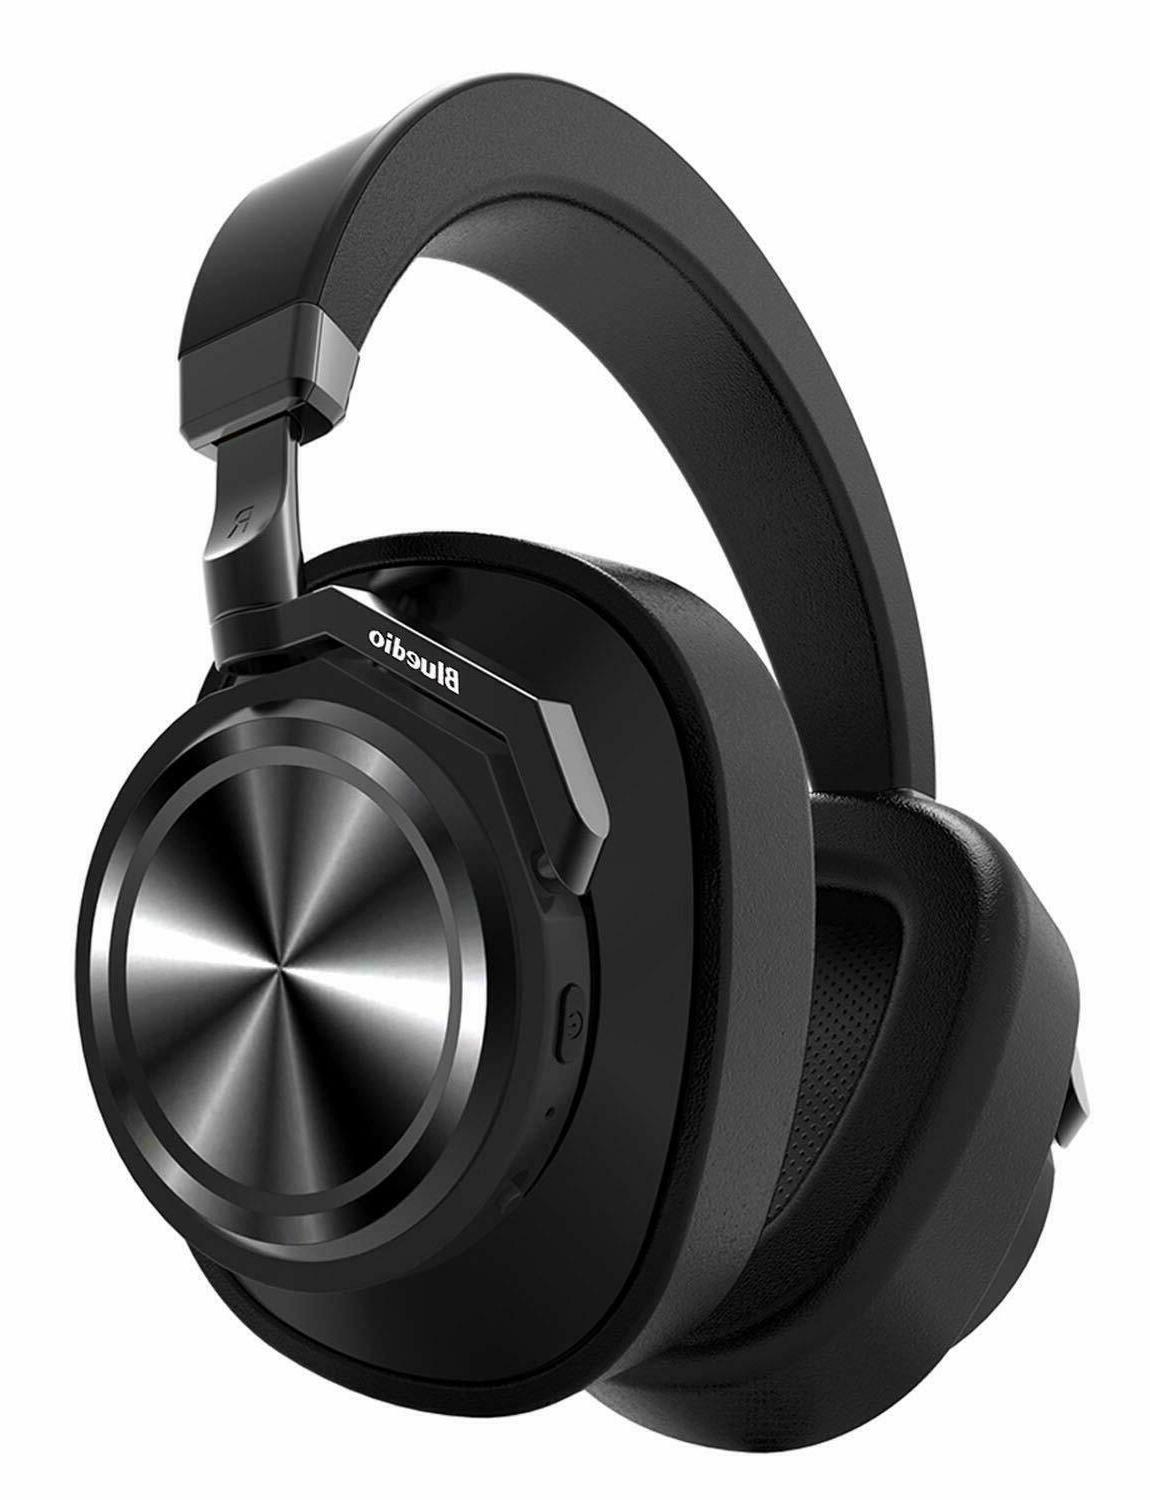 t6 active noise cancelling headphones with mic